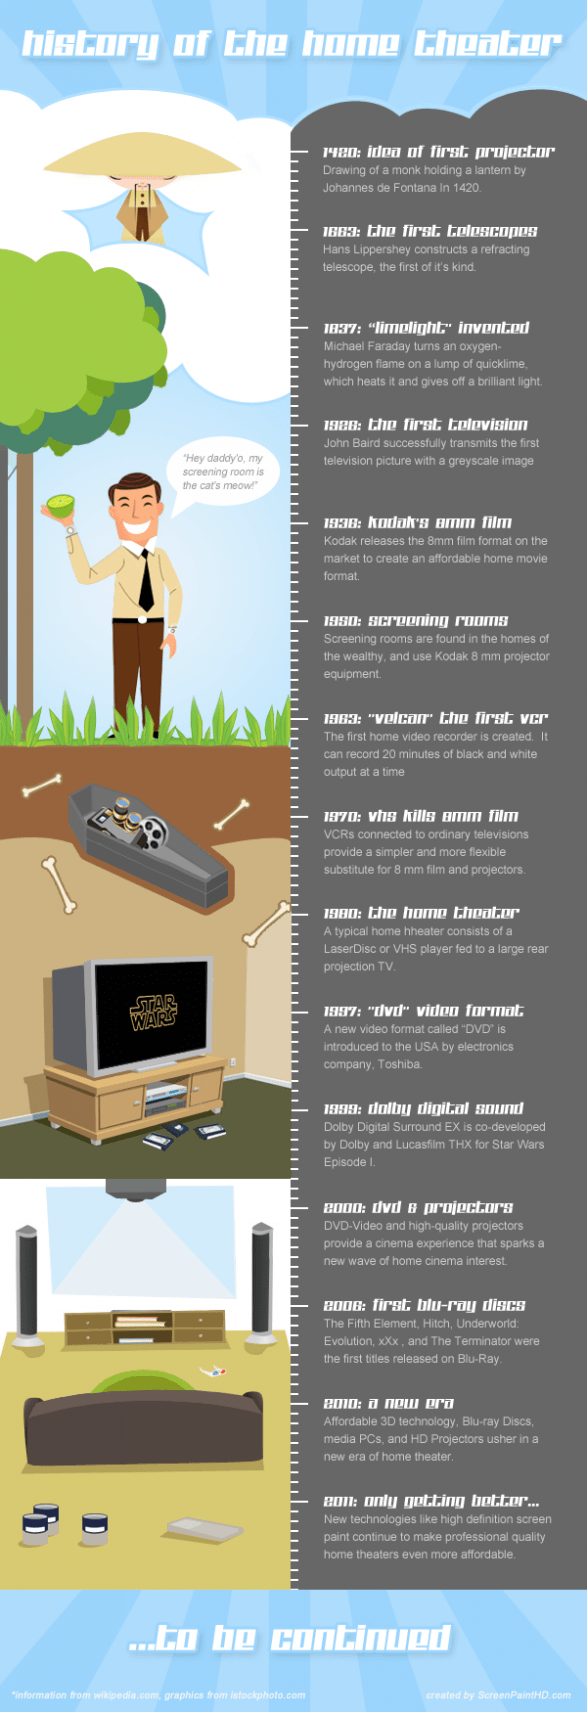 The History of the Home Theater